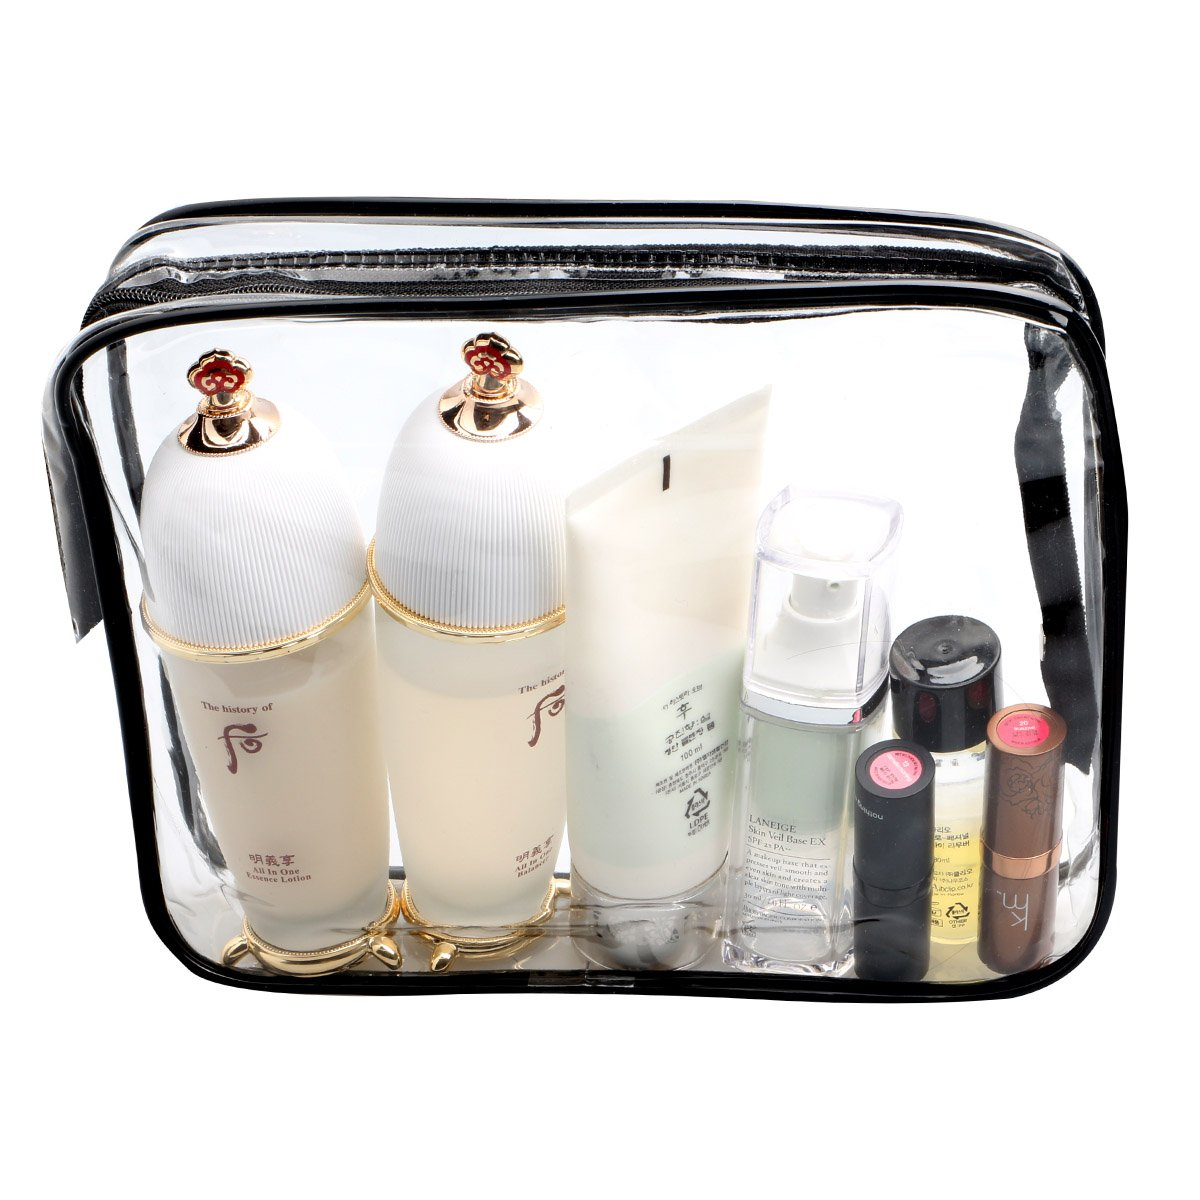 ESHOW 3 Set Clear Packing Cubes, PVC Waterproof Multi-function Hand Pouch Tote Bag Makeup Bag with Zipper and Travel to Buggy Bag for Toiletries Cosmetic and Bathroom Accessories (black) by WIFUME (Image #6)